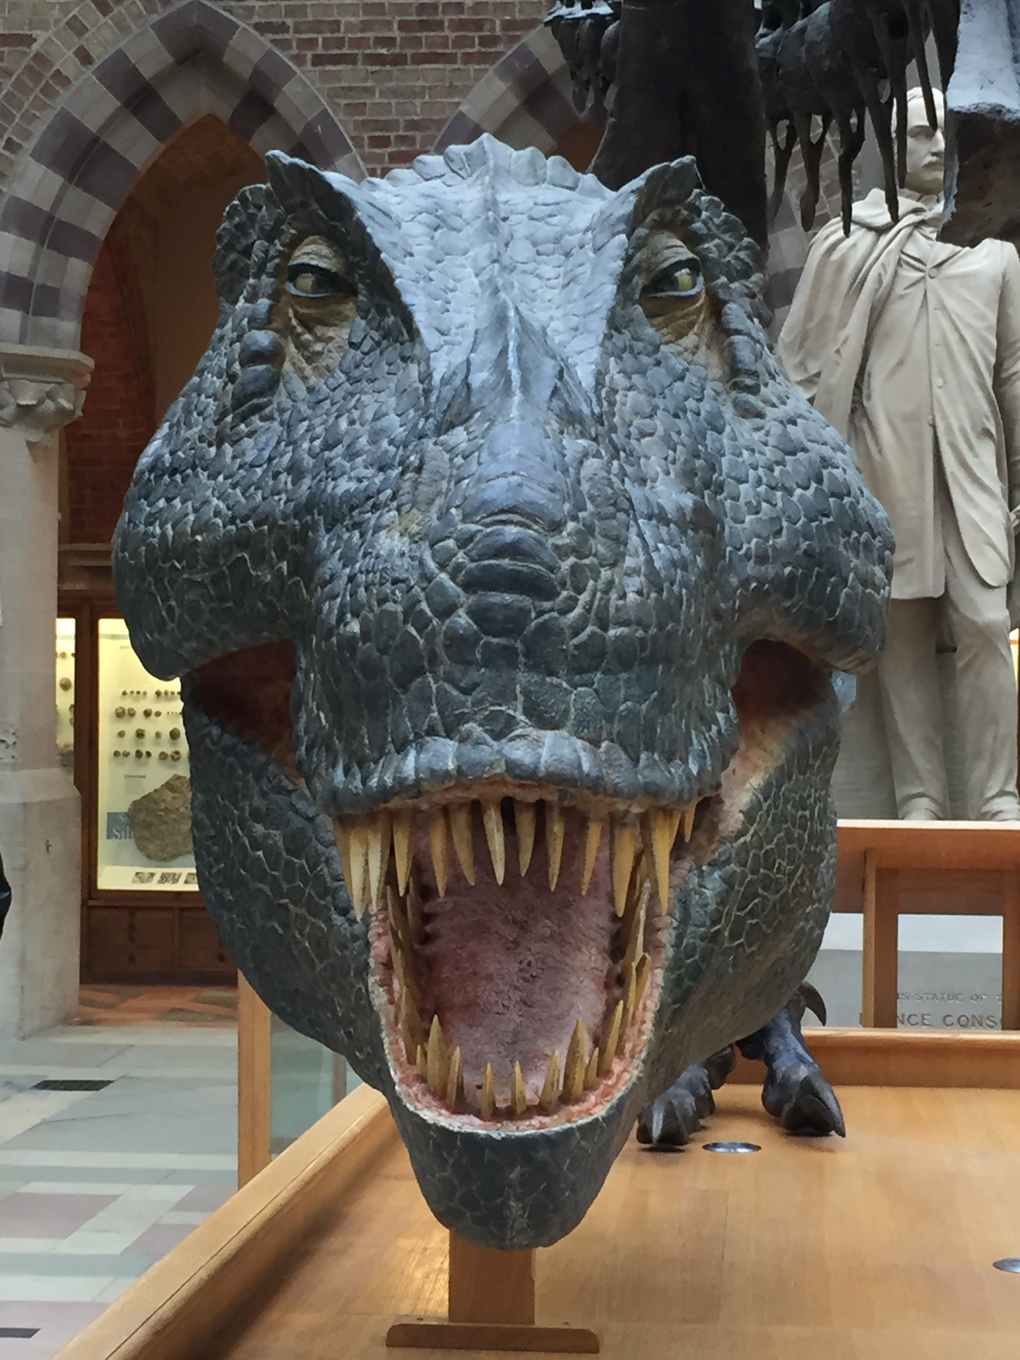 A giant T. Rex head model, viewed face-on